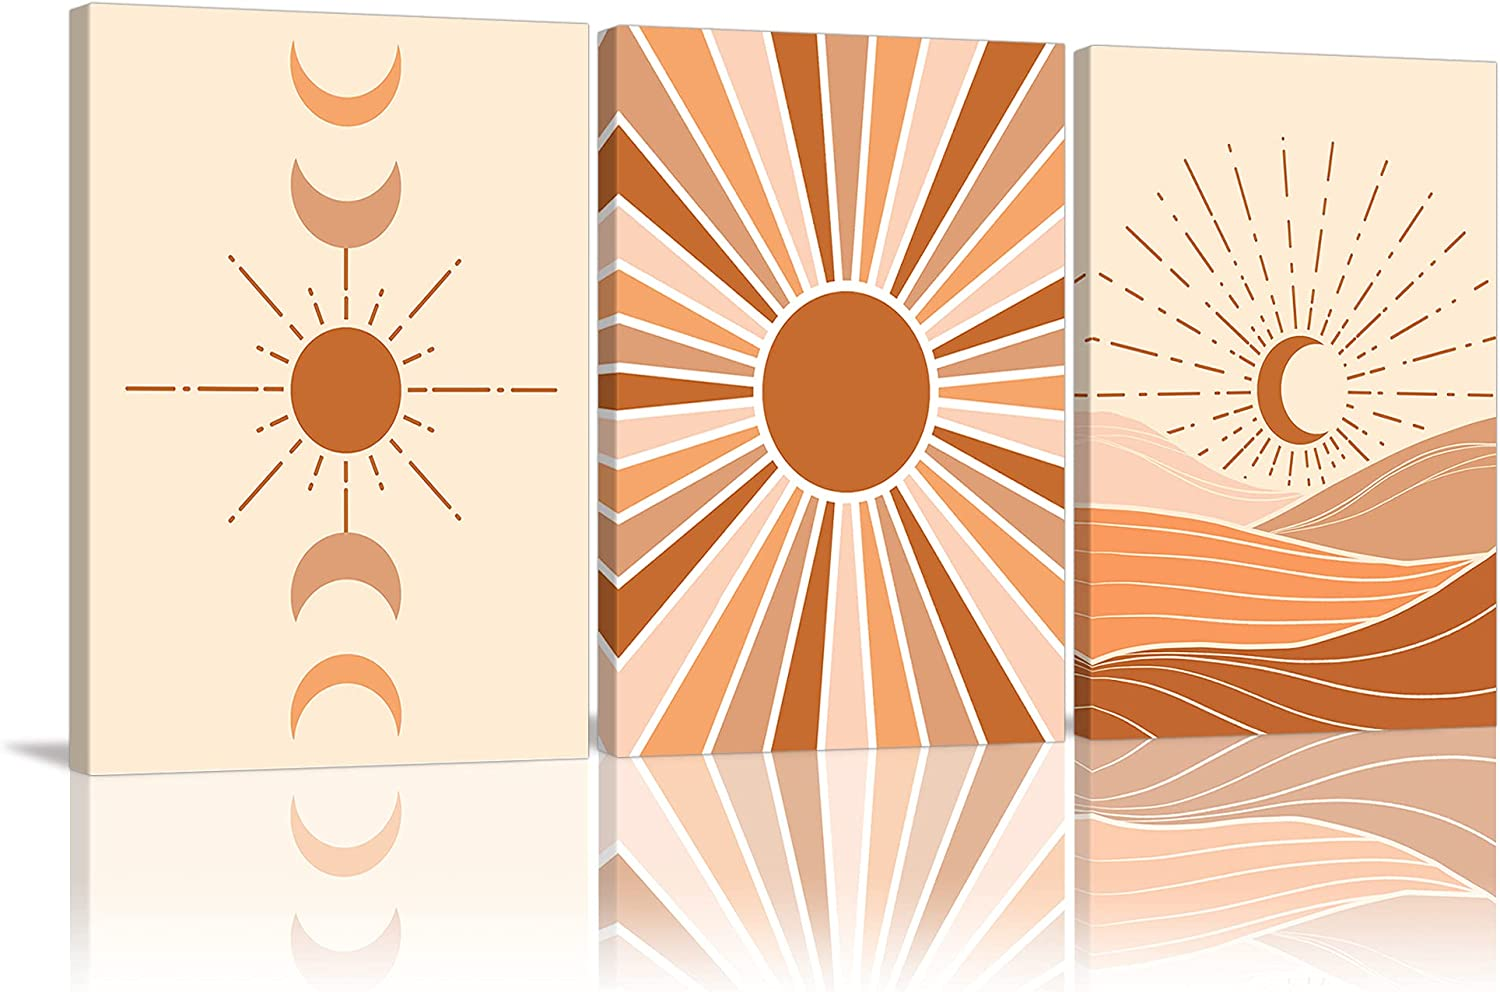 Mid Century Wall Art 3 Panels Framed Canvas Terracotta Wall Picture Minimalist Wall Prints Moon Boho Canvas Prints Modern Geometric Artwork Home Decor for Living Room Bedroom Bathroom Office Framed Ready to Hang